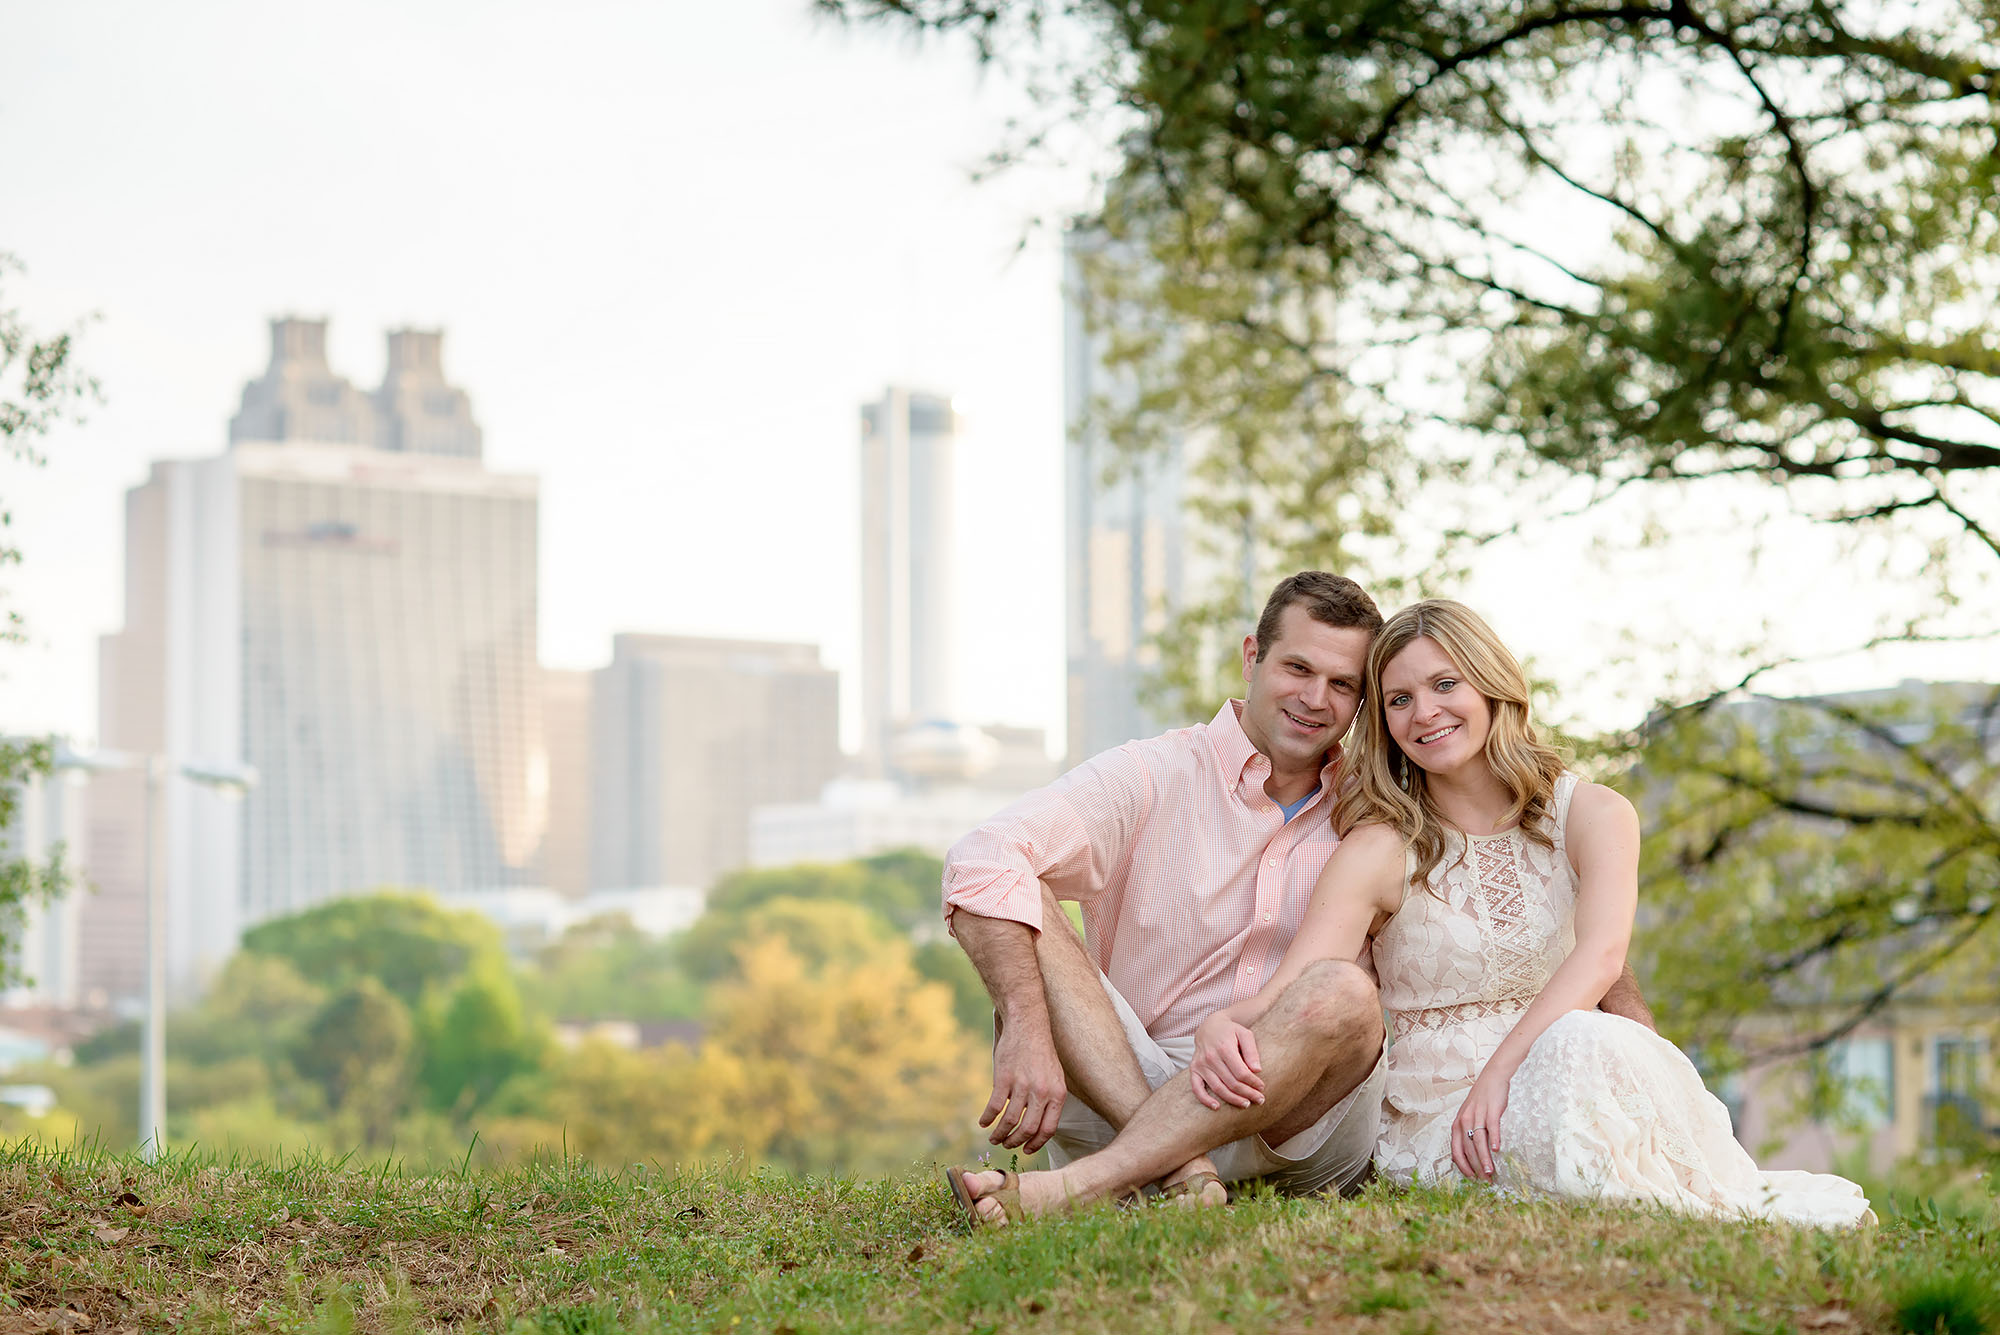 Kyle and Catie | Atlanta Engagement Shoot